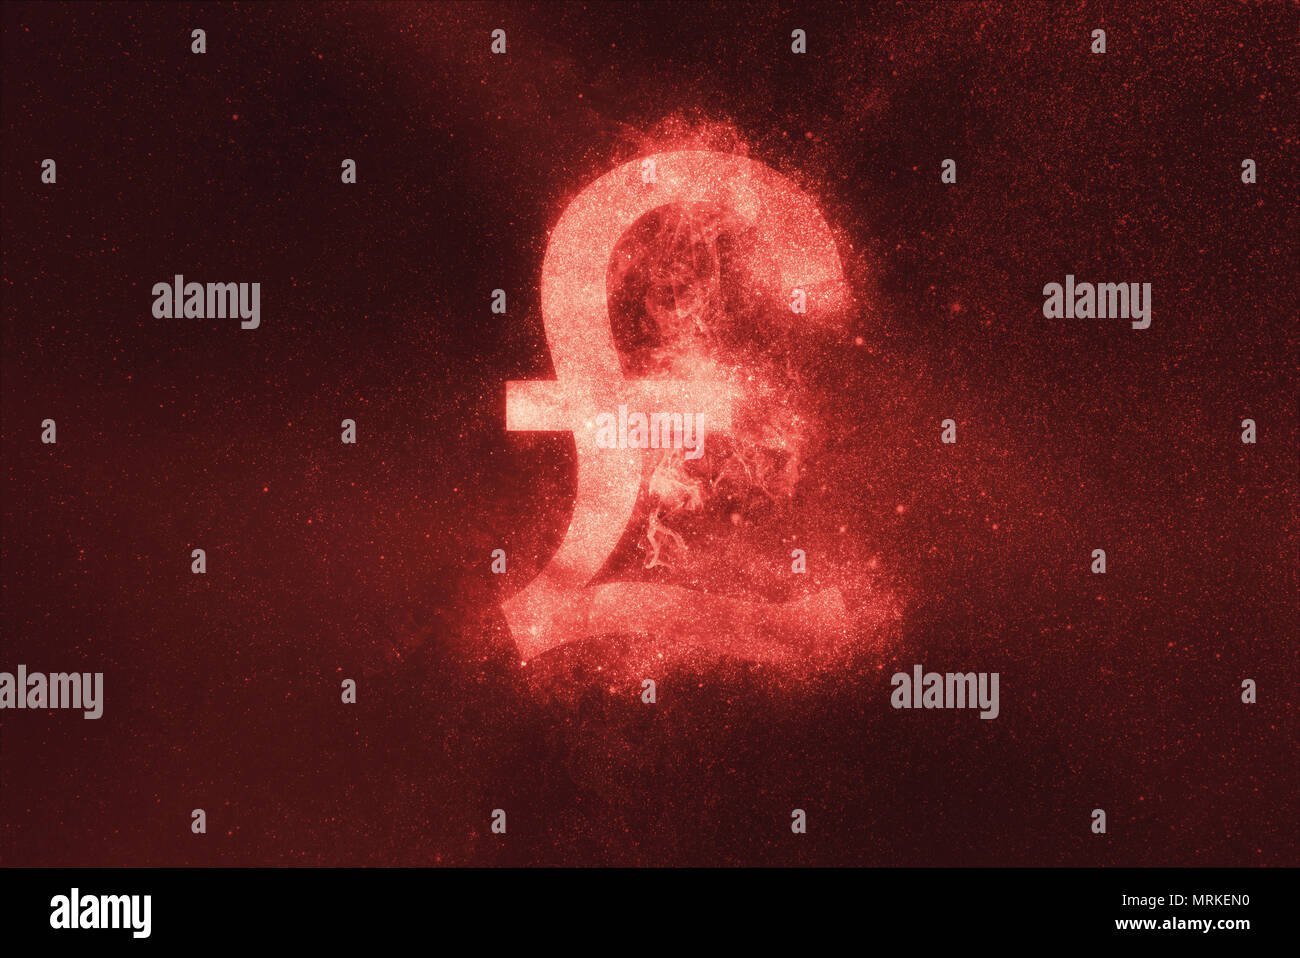 Pound sterling sign, Pound sterling Symbol. Abstract night sky background - Stock Image